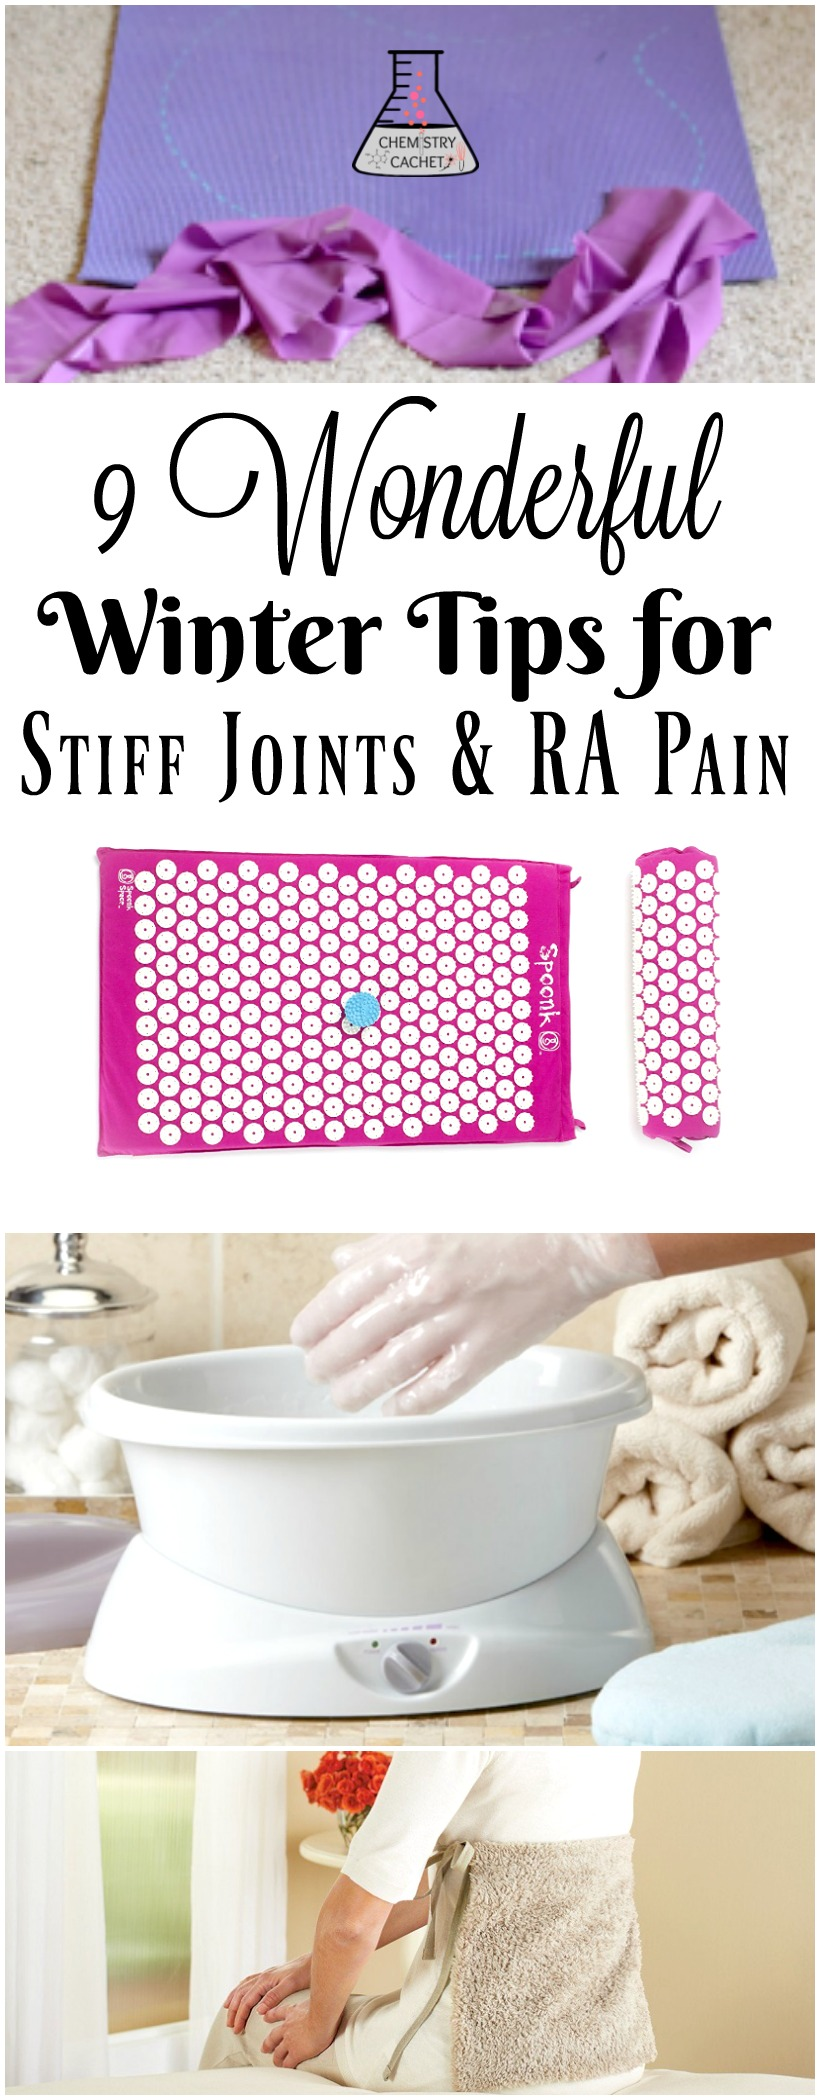 9 Amazing Winter Tips for Stiff Joints & Rheumatoid Arthritis Pain. Effective ways to sooth joint pain, stiffness, and feel better! on chemistrycachet.com